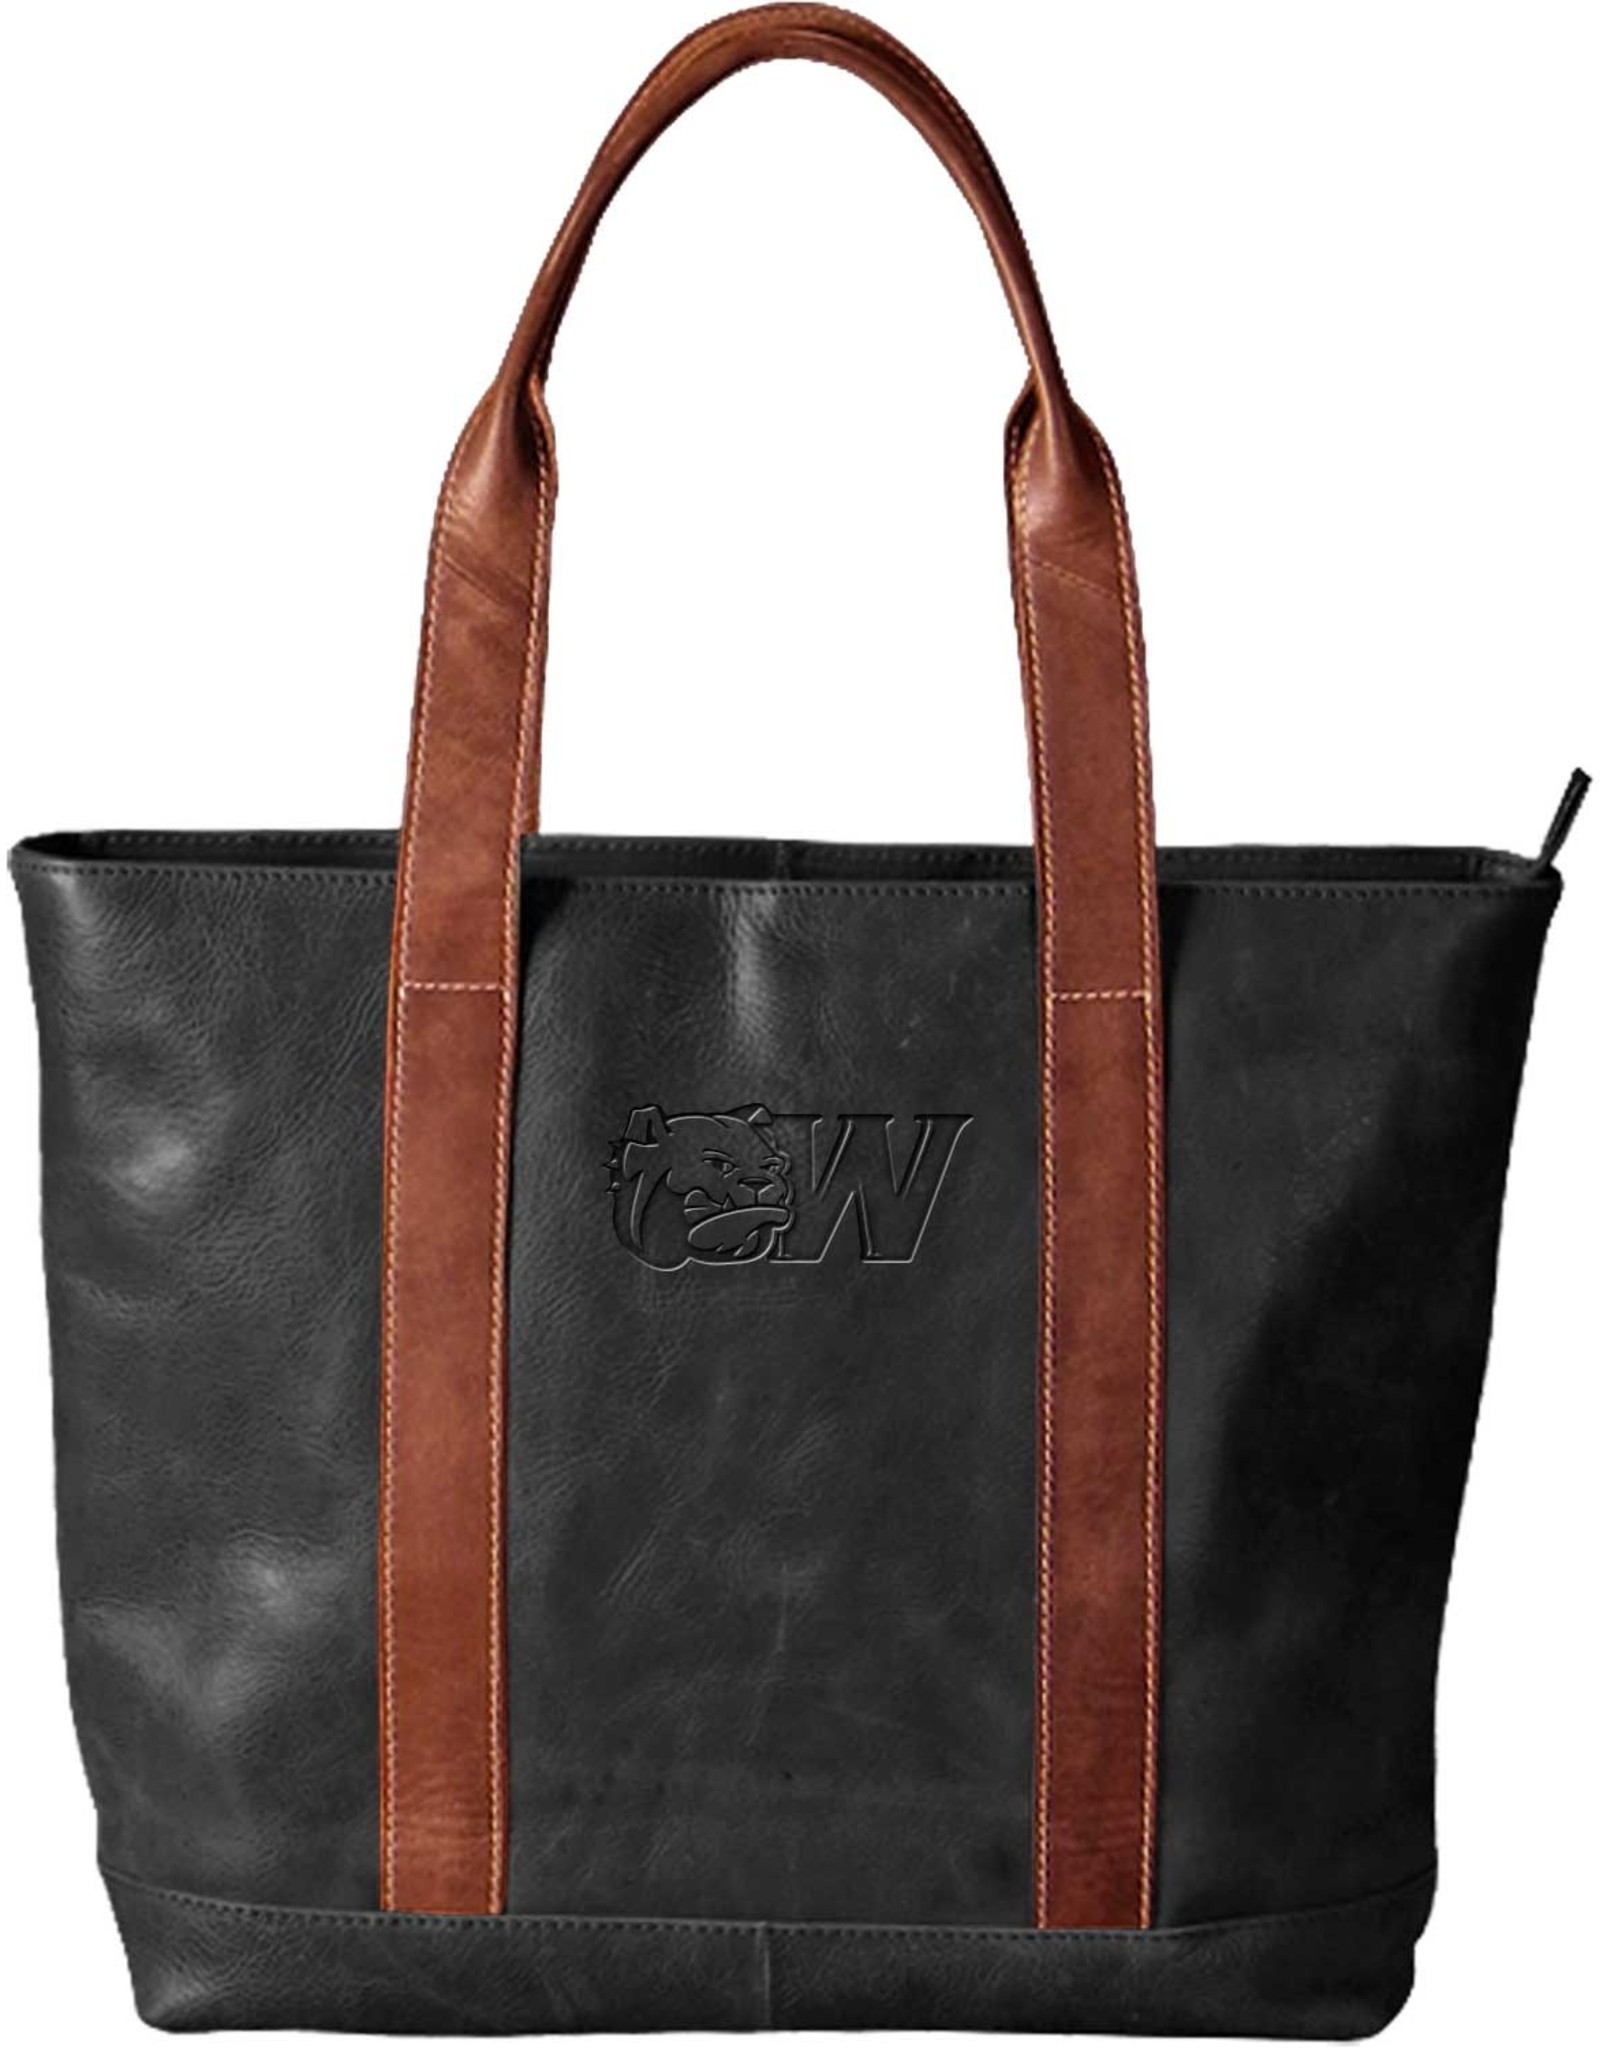 Carolina Sewn Westbridge Two-Tone Black and Tan Tote Dog Head W (ONLINE ONLY)